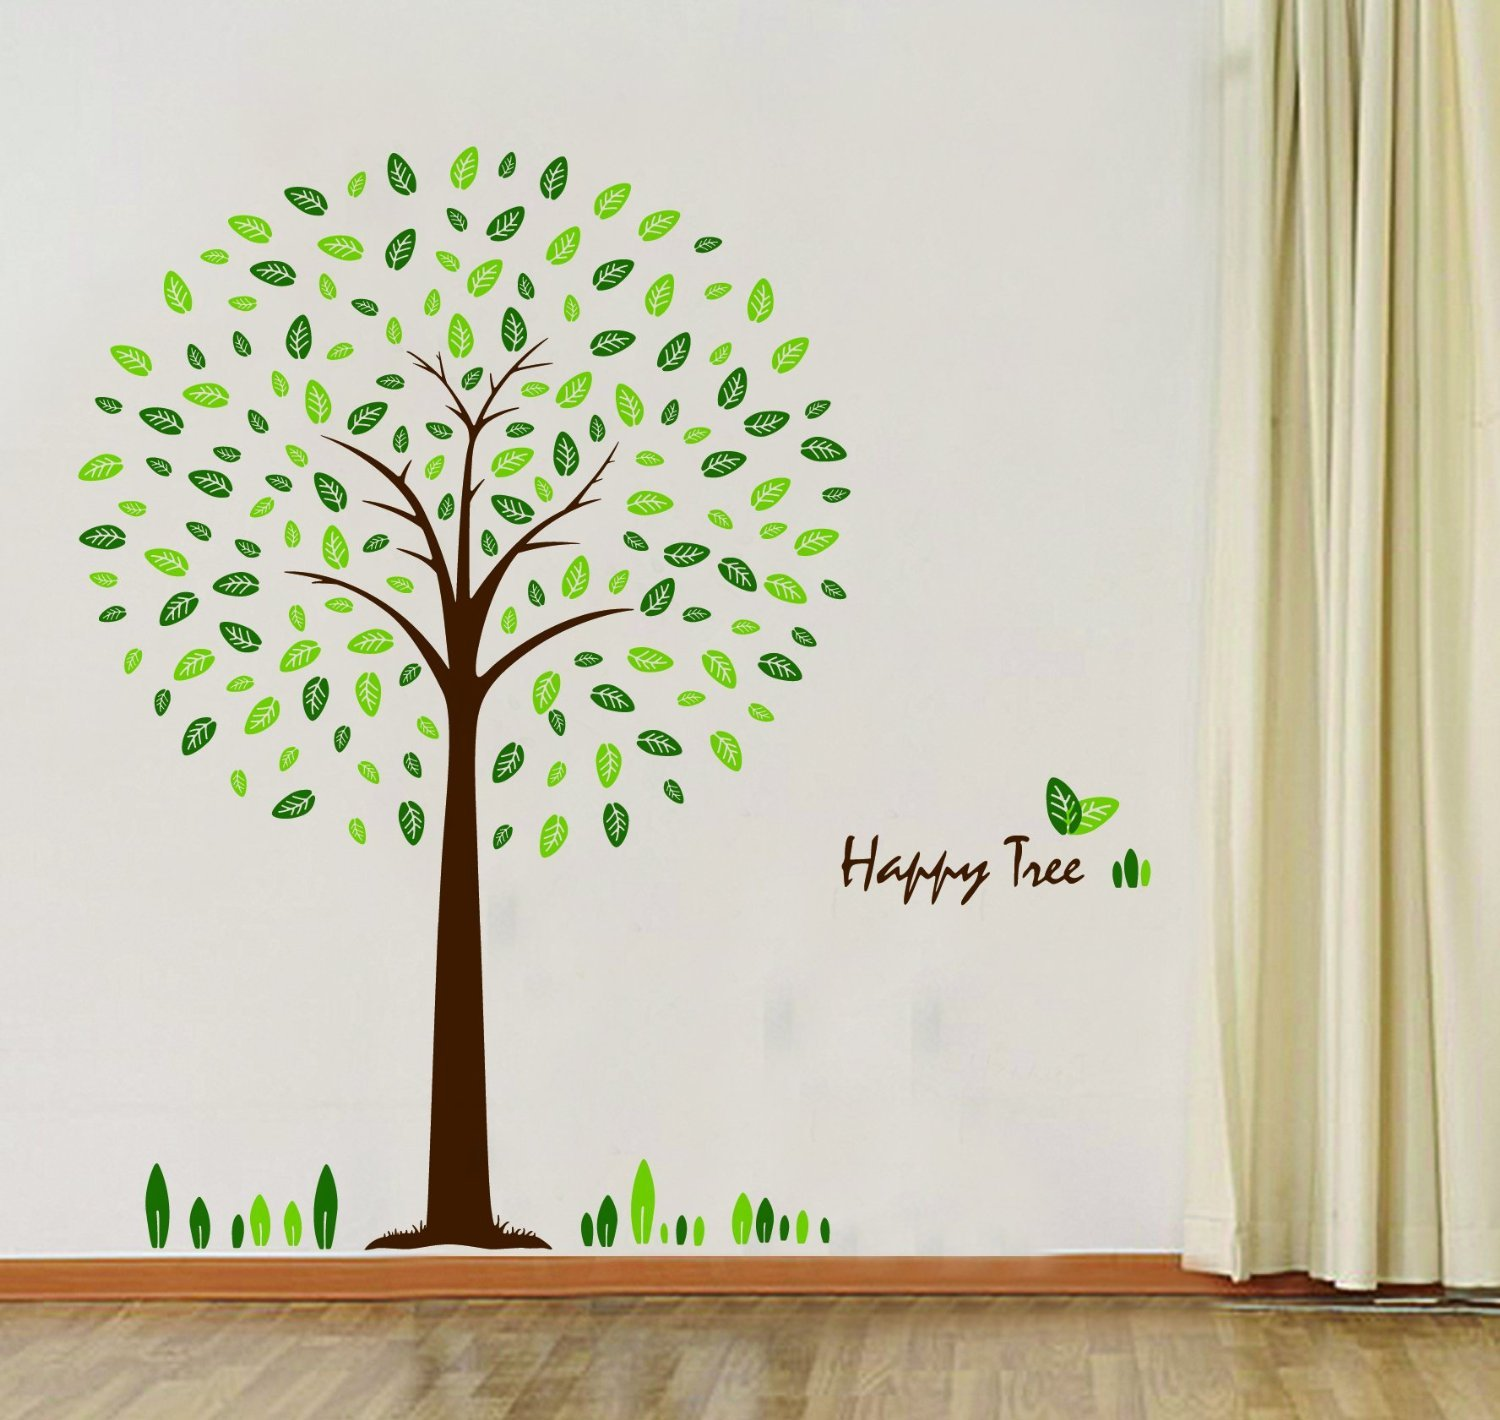 Amazon hunnt happy tree wall sticker decal ideal for kids amazon hunnt happy tree wall sticker decal ideal for kids room baby nursery living room baby amipublicfo Gallery